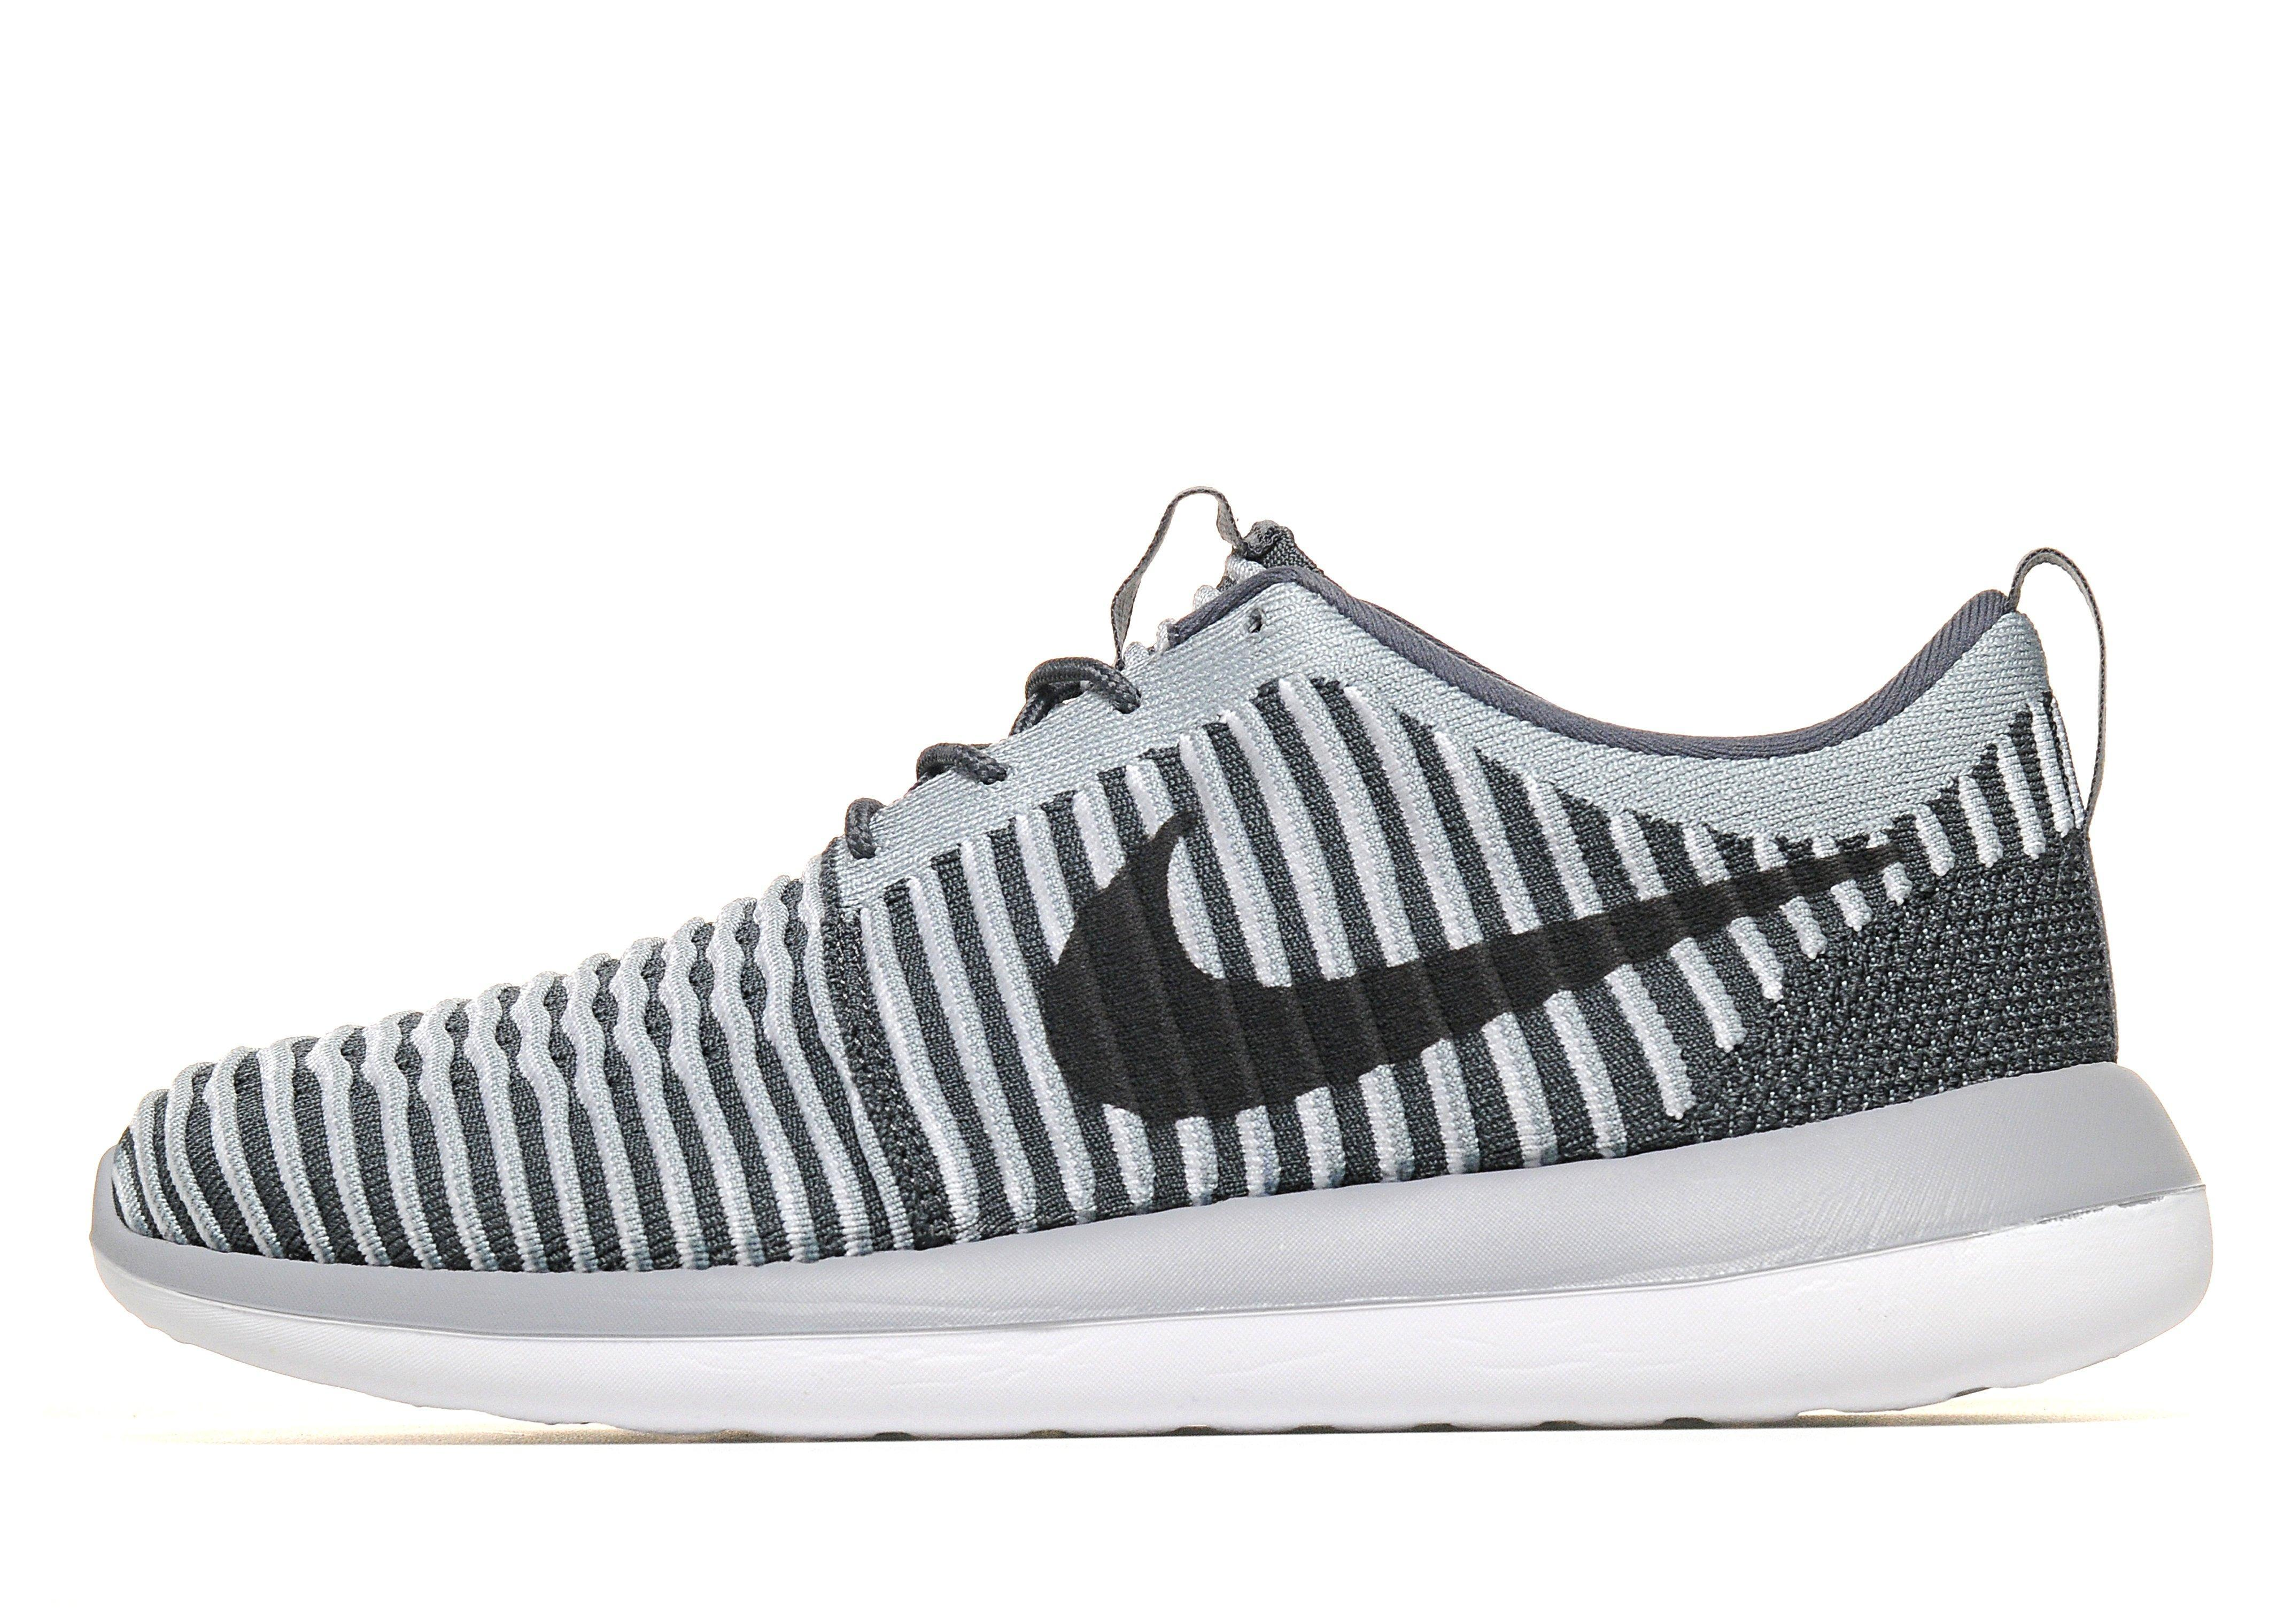 separation shoes 71f01 f26b3 Previously sold at JD Sports · Men s Nike Flyknit .